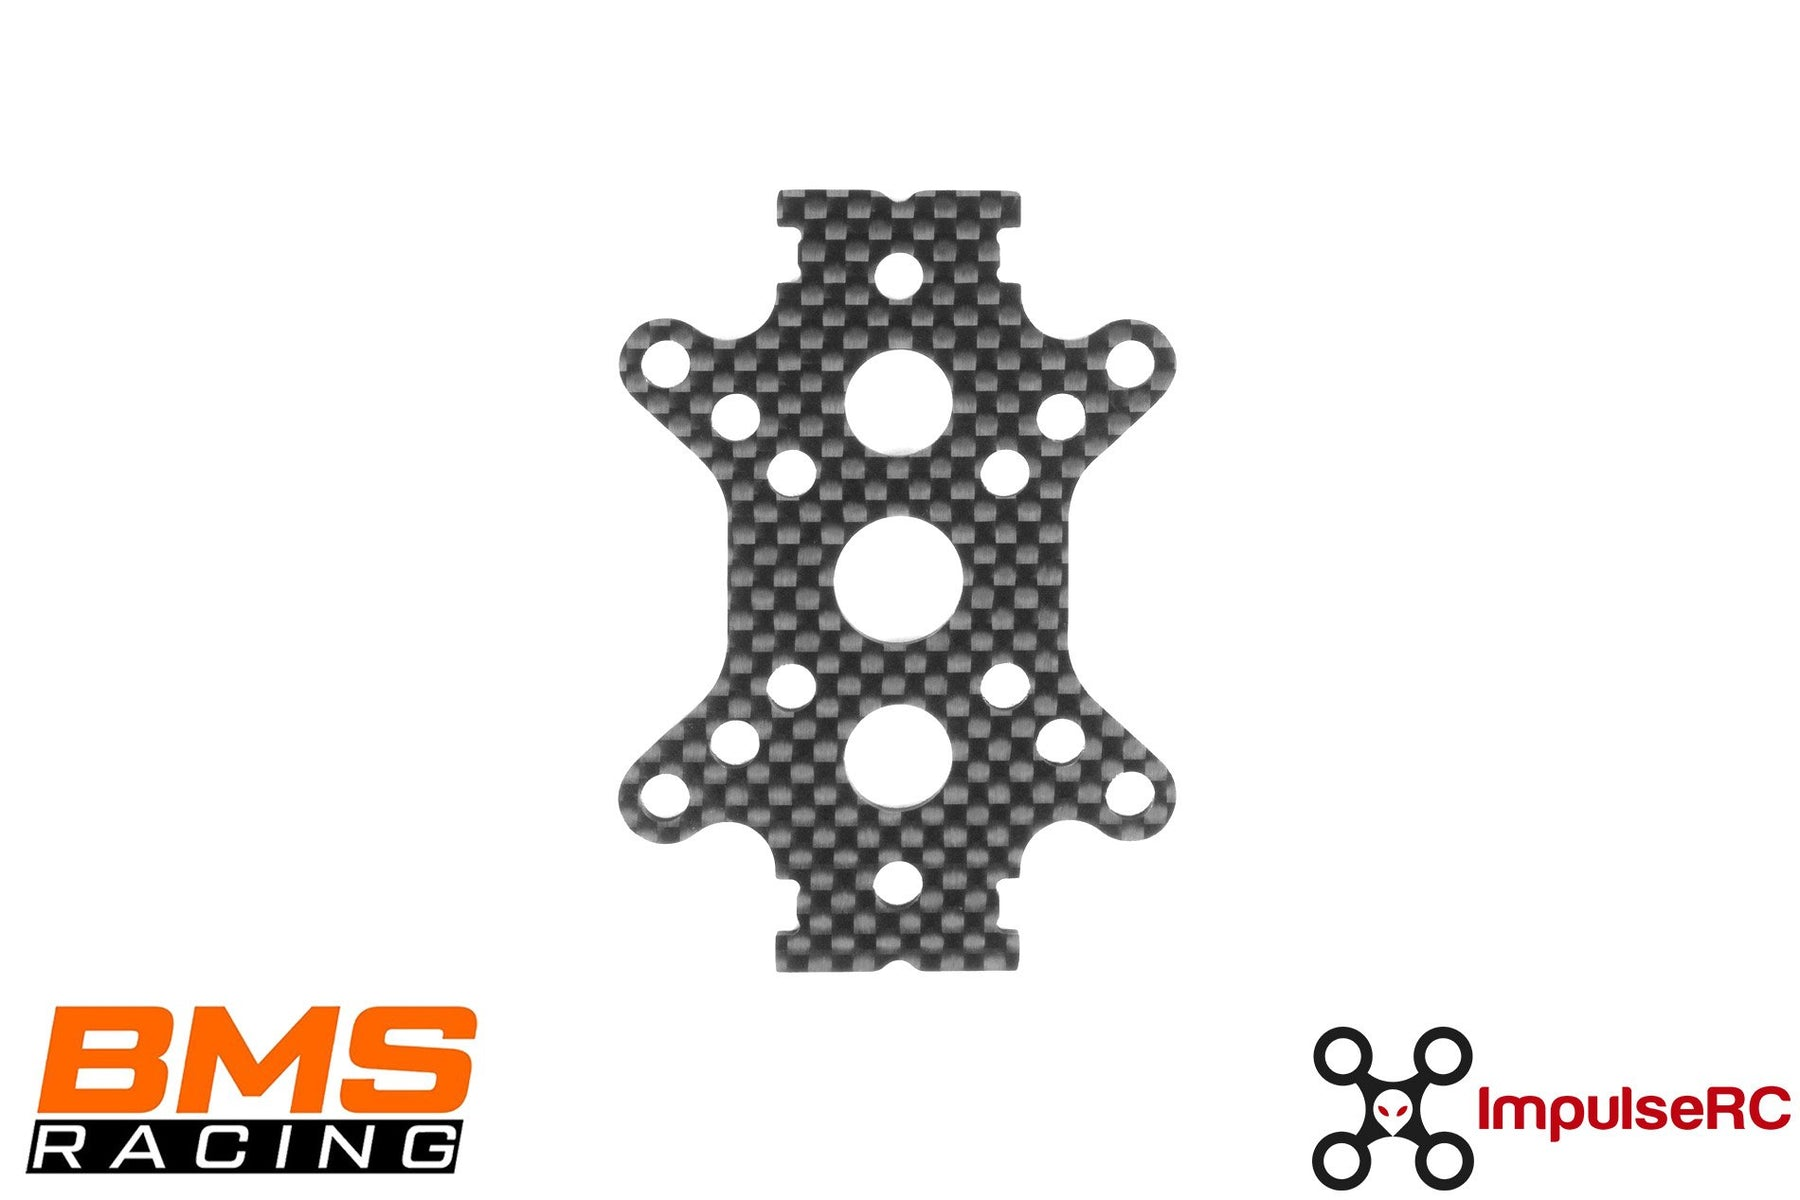 ImpulseRC BMS Racing JS-1 Frame 2mm Carbon Fiber Main Plate